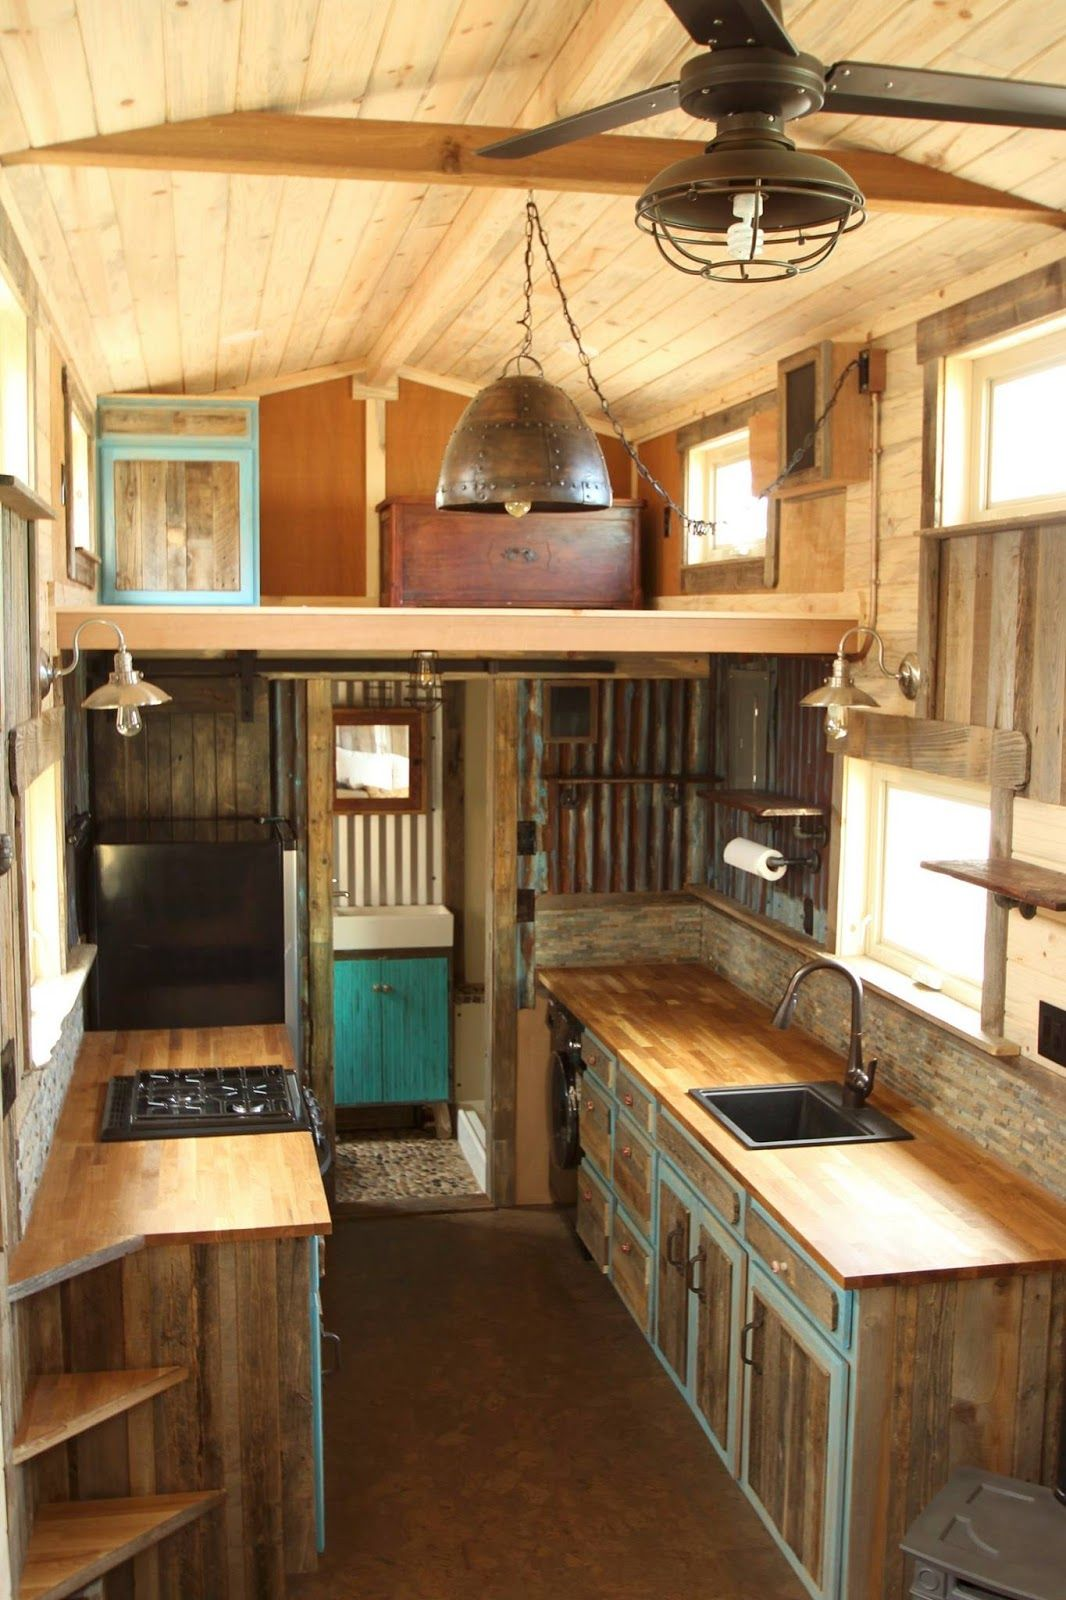 A Beautiful Custom Rustic Home From SimBLISSity Tiny Homes. Made From A Pine And Corrugated